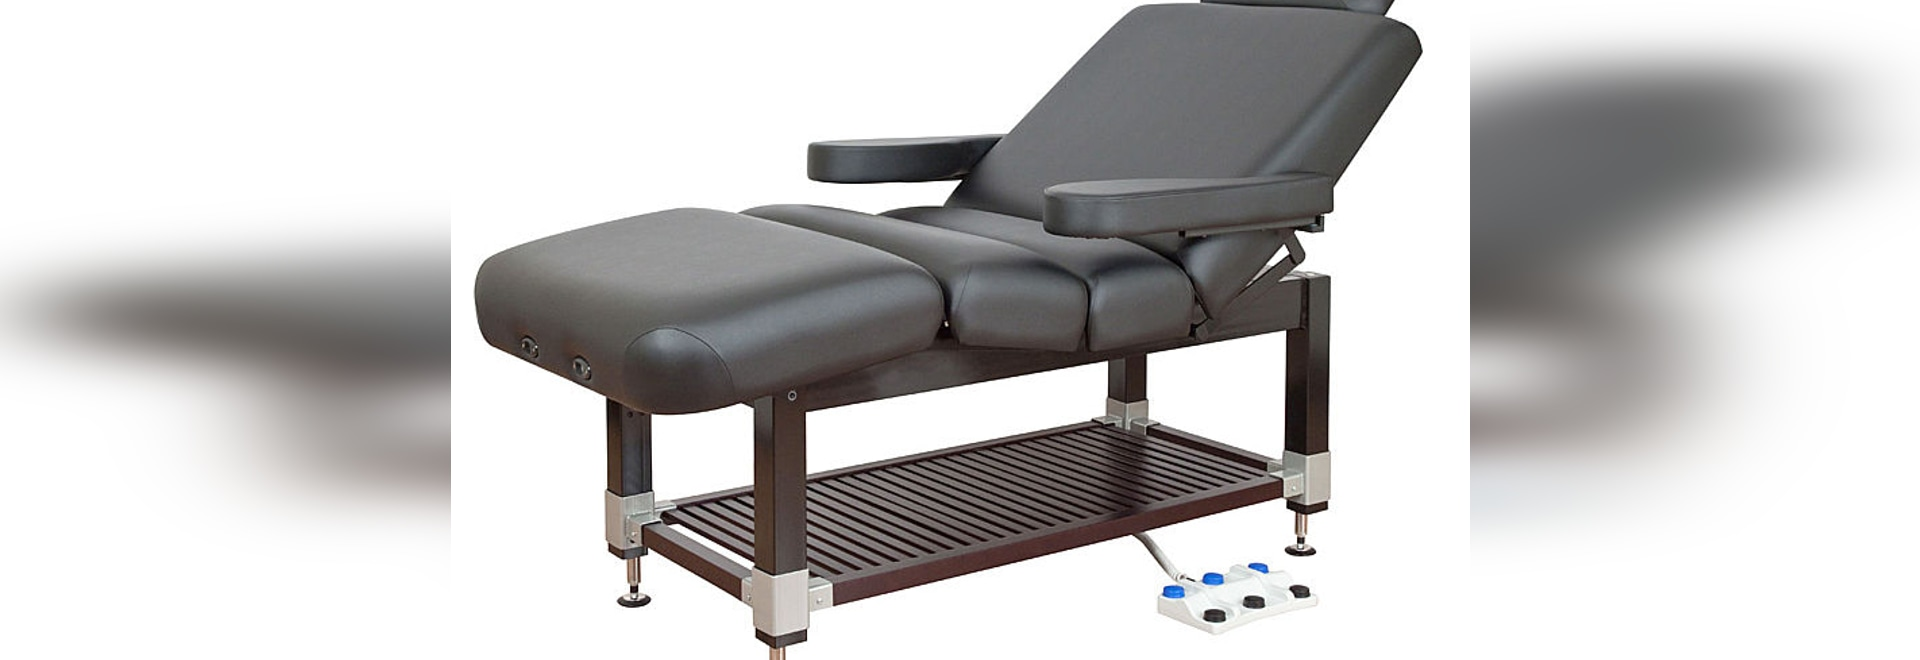 Clodagh Leo by Oakworks Massage - The ultimate relaxation system